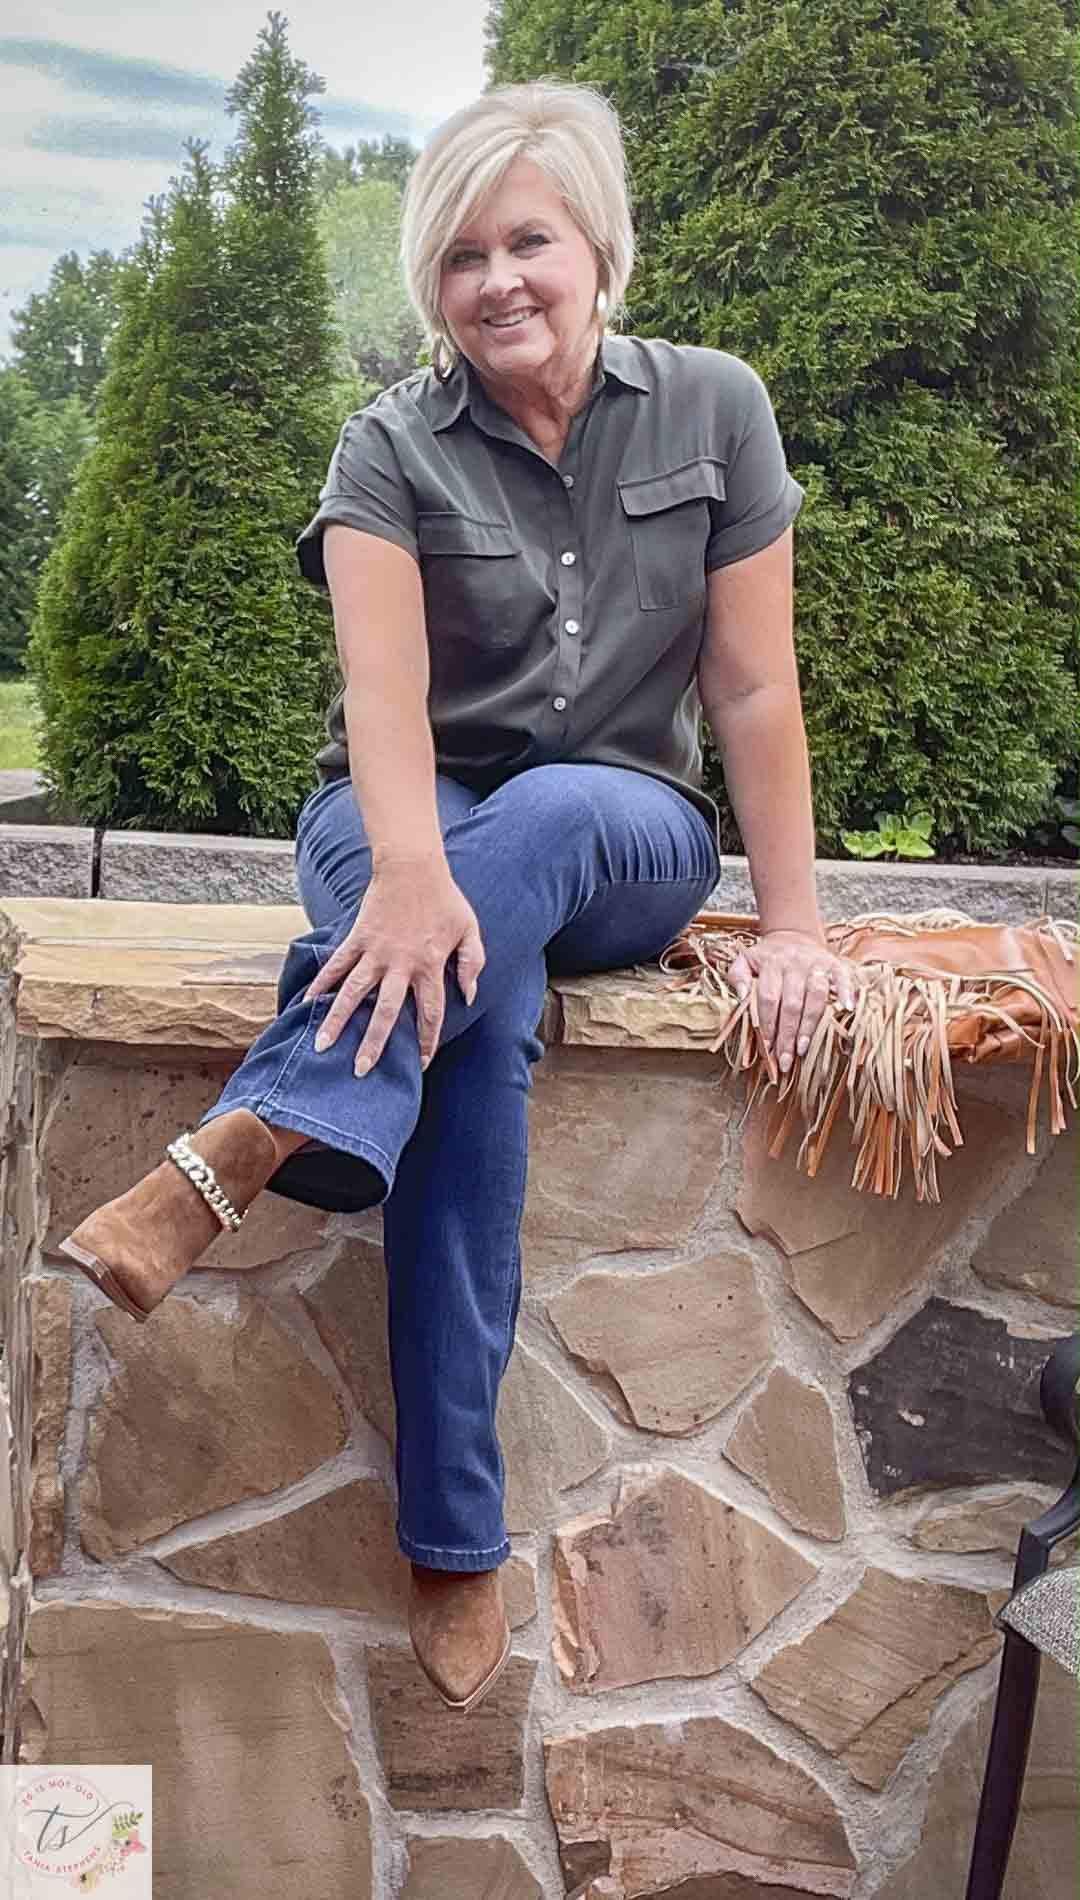 Over 40 Fashion Blogger, Tania Stephens, is wearing an olive button-up shirt, bootcut jeans, and suede ankle boots with a chain detail